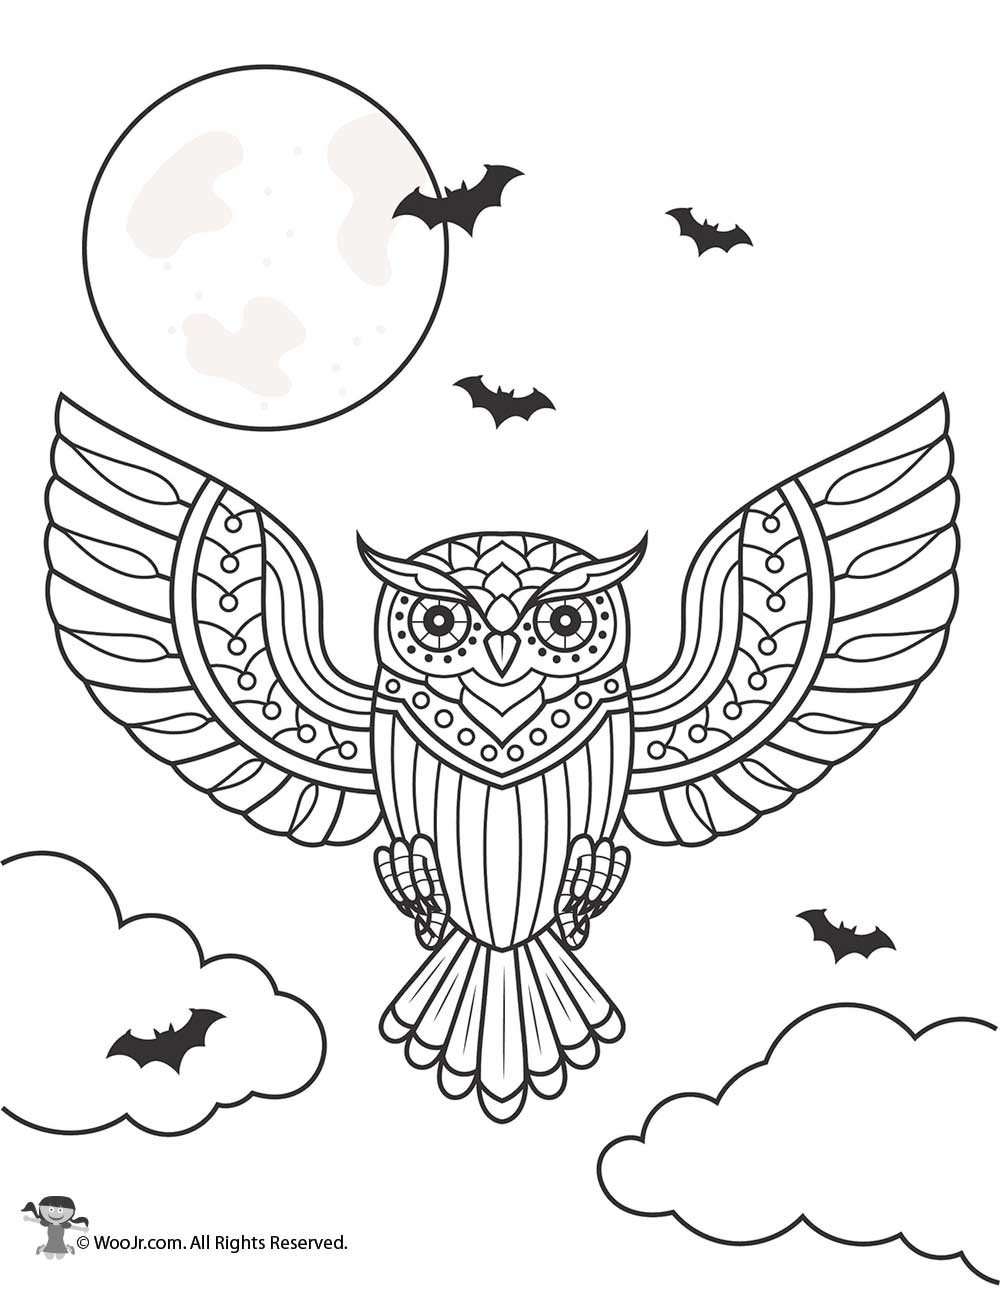 Day Of The Dead Owl Coloring Page Woo! Jr. Kids Activities